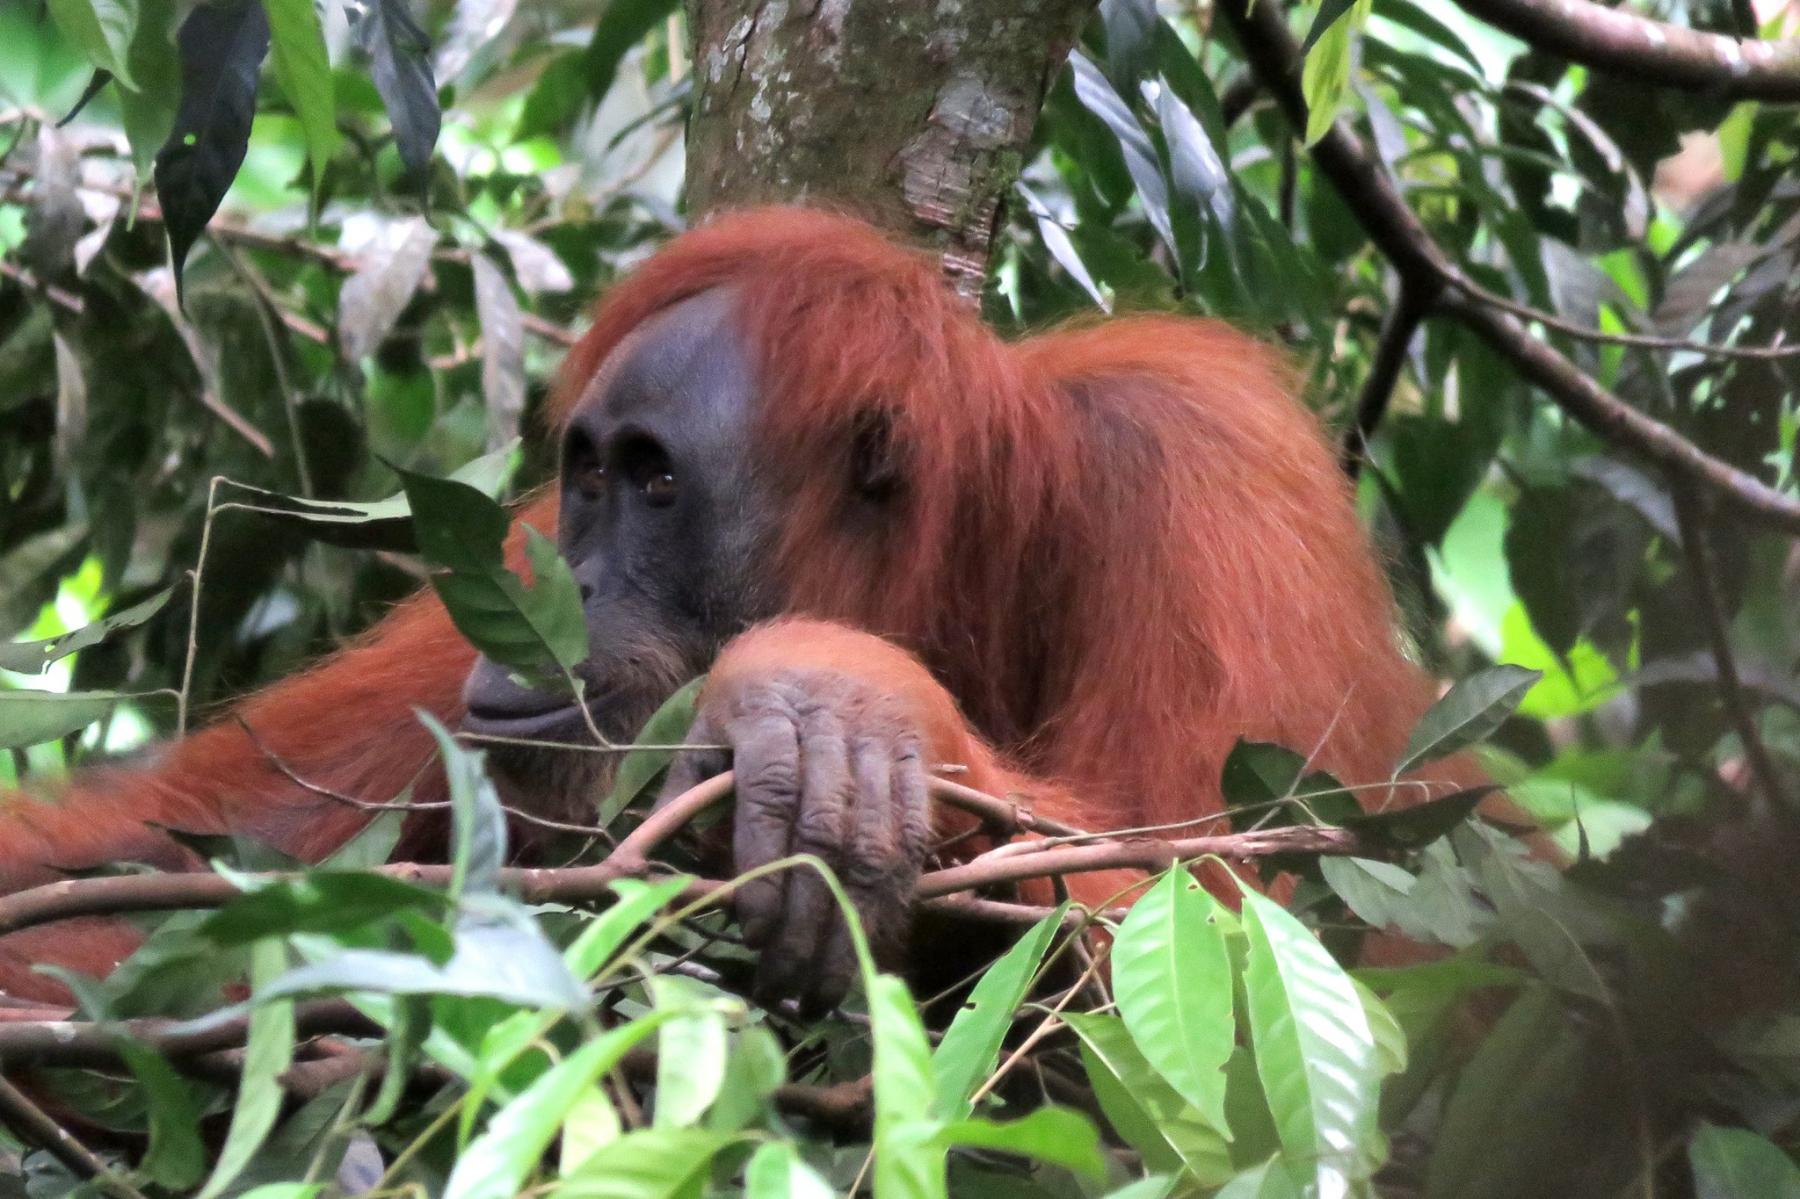 Gunung Leuser National Park Jungle Trek - Orang Utans & Rafflesia Flower Treks starting at Bukit Lawang-Jungle Trekking, Bukit Lawang, Langkat Regency, North Sumatra, Indonesia